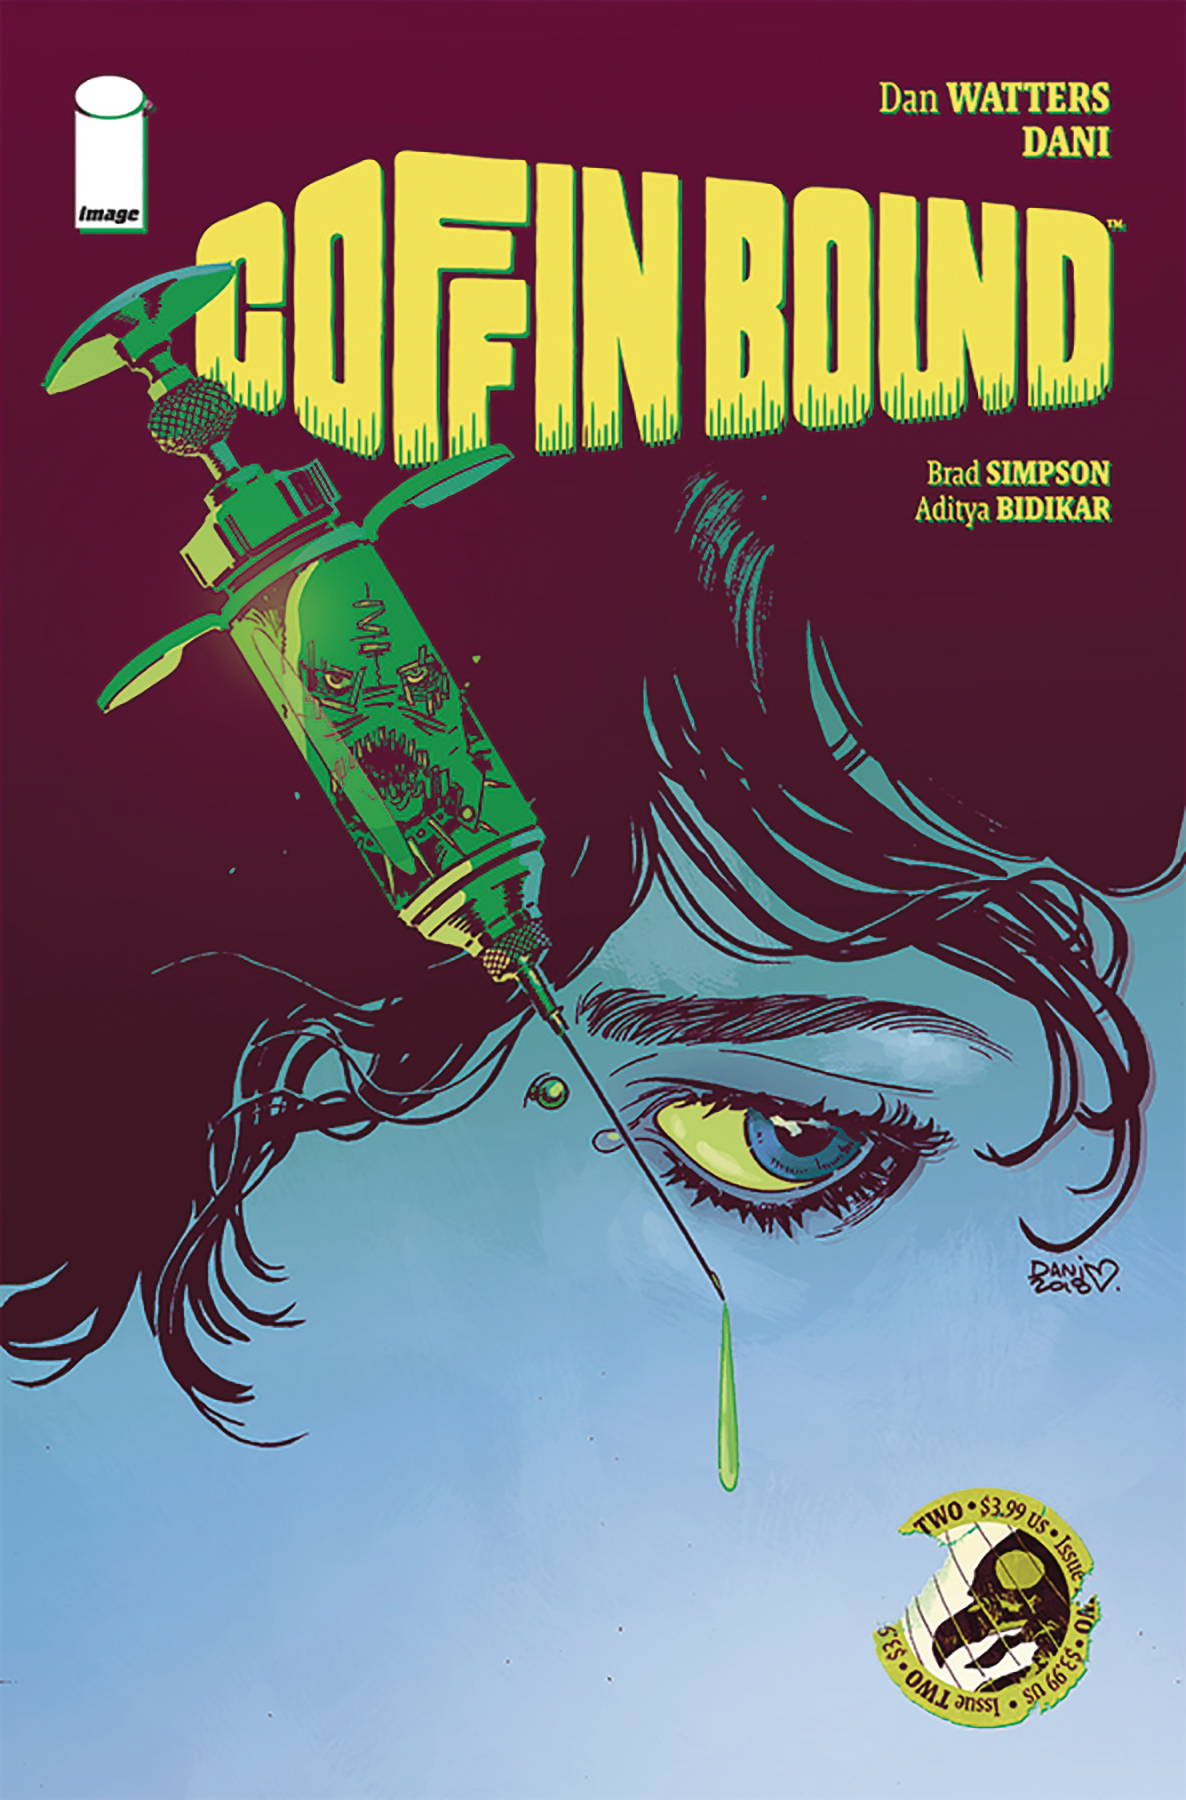 Coffin Bound #2  is due out 9/11/2019.